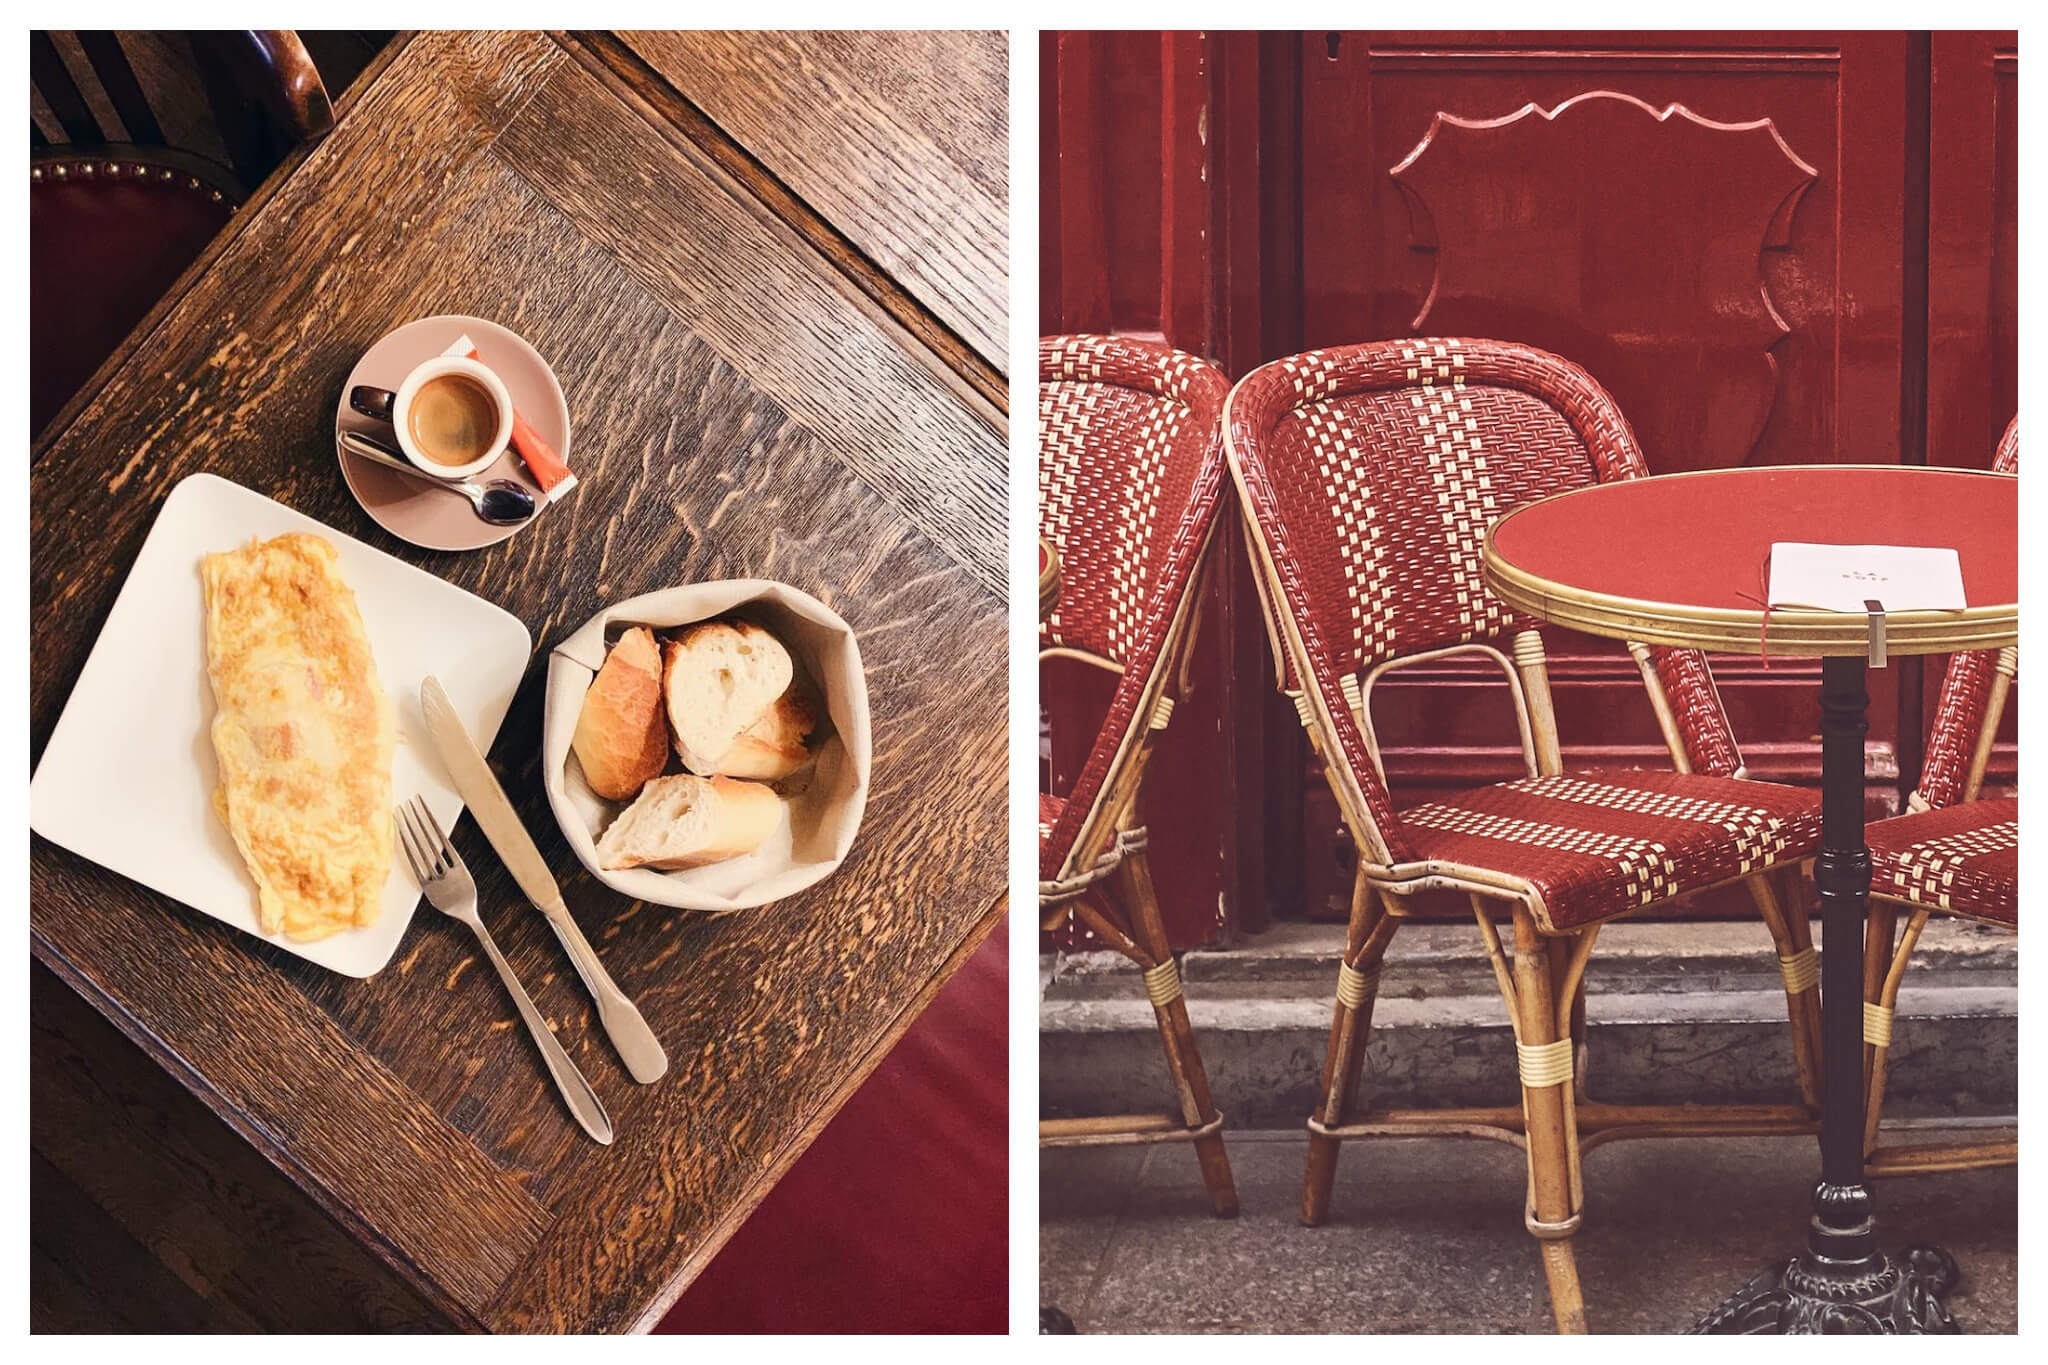 Left: An omelette, espresso and basket of bread sit atop a wooden table at Au Petite Suisse restaurant in Paris, Right: A red table and chairs sit in front of a red wall on a Parisian terrasse